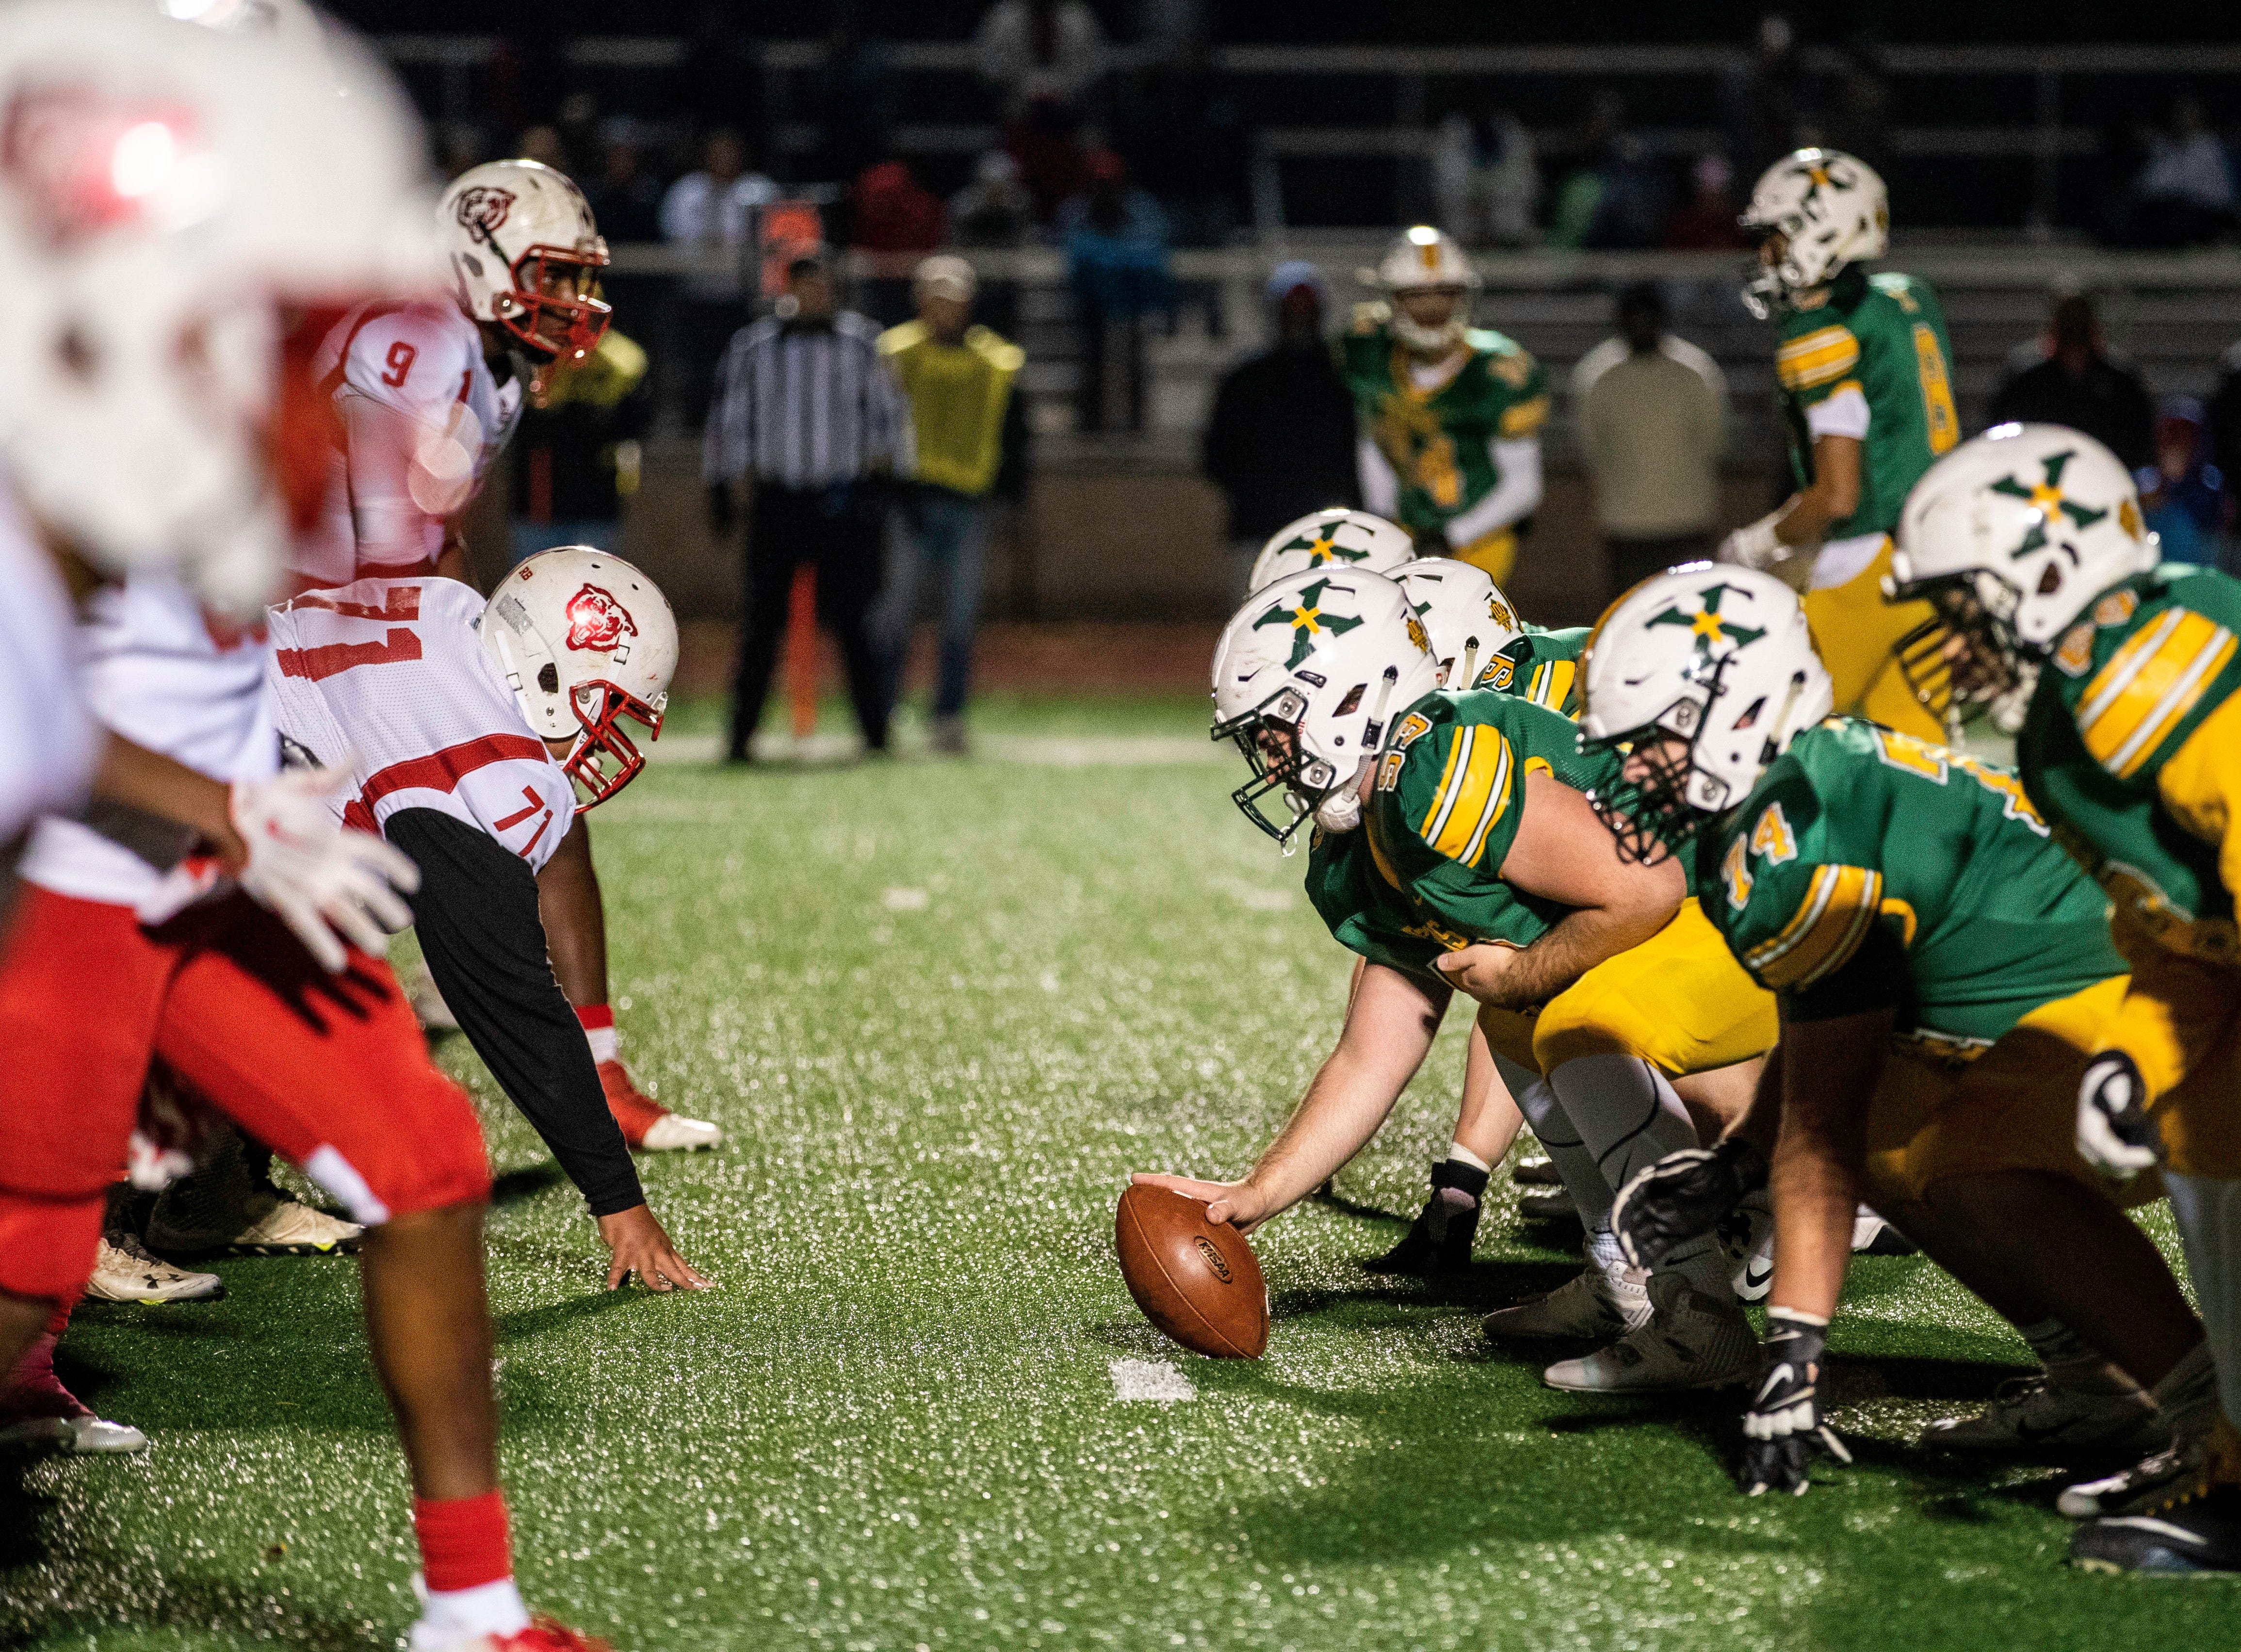 Butler and St. X go head to head in the second round of the playoffs at St. Xavier High School, Friday, Nov. 9, 2018.